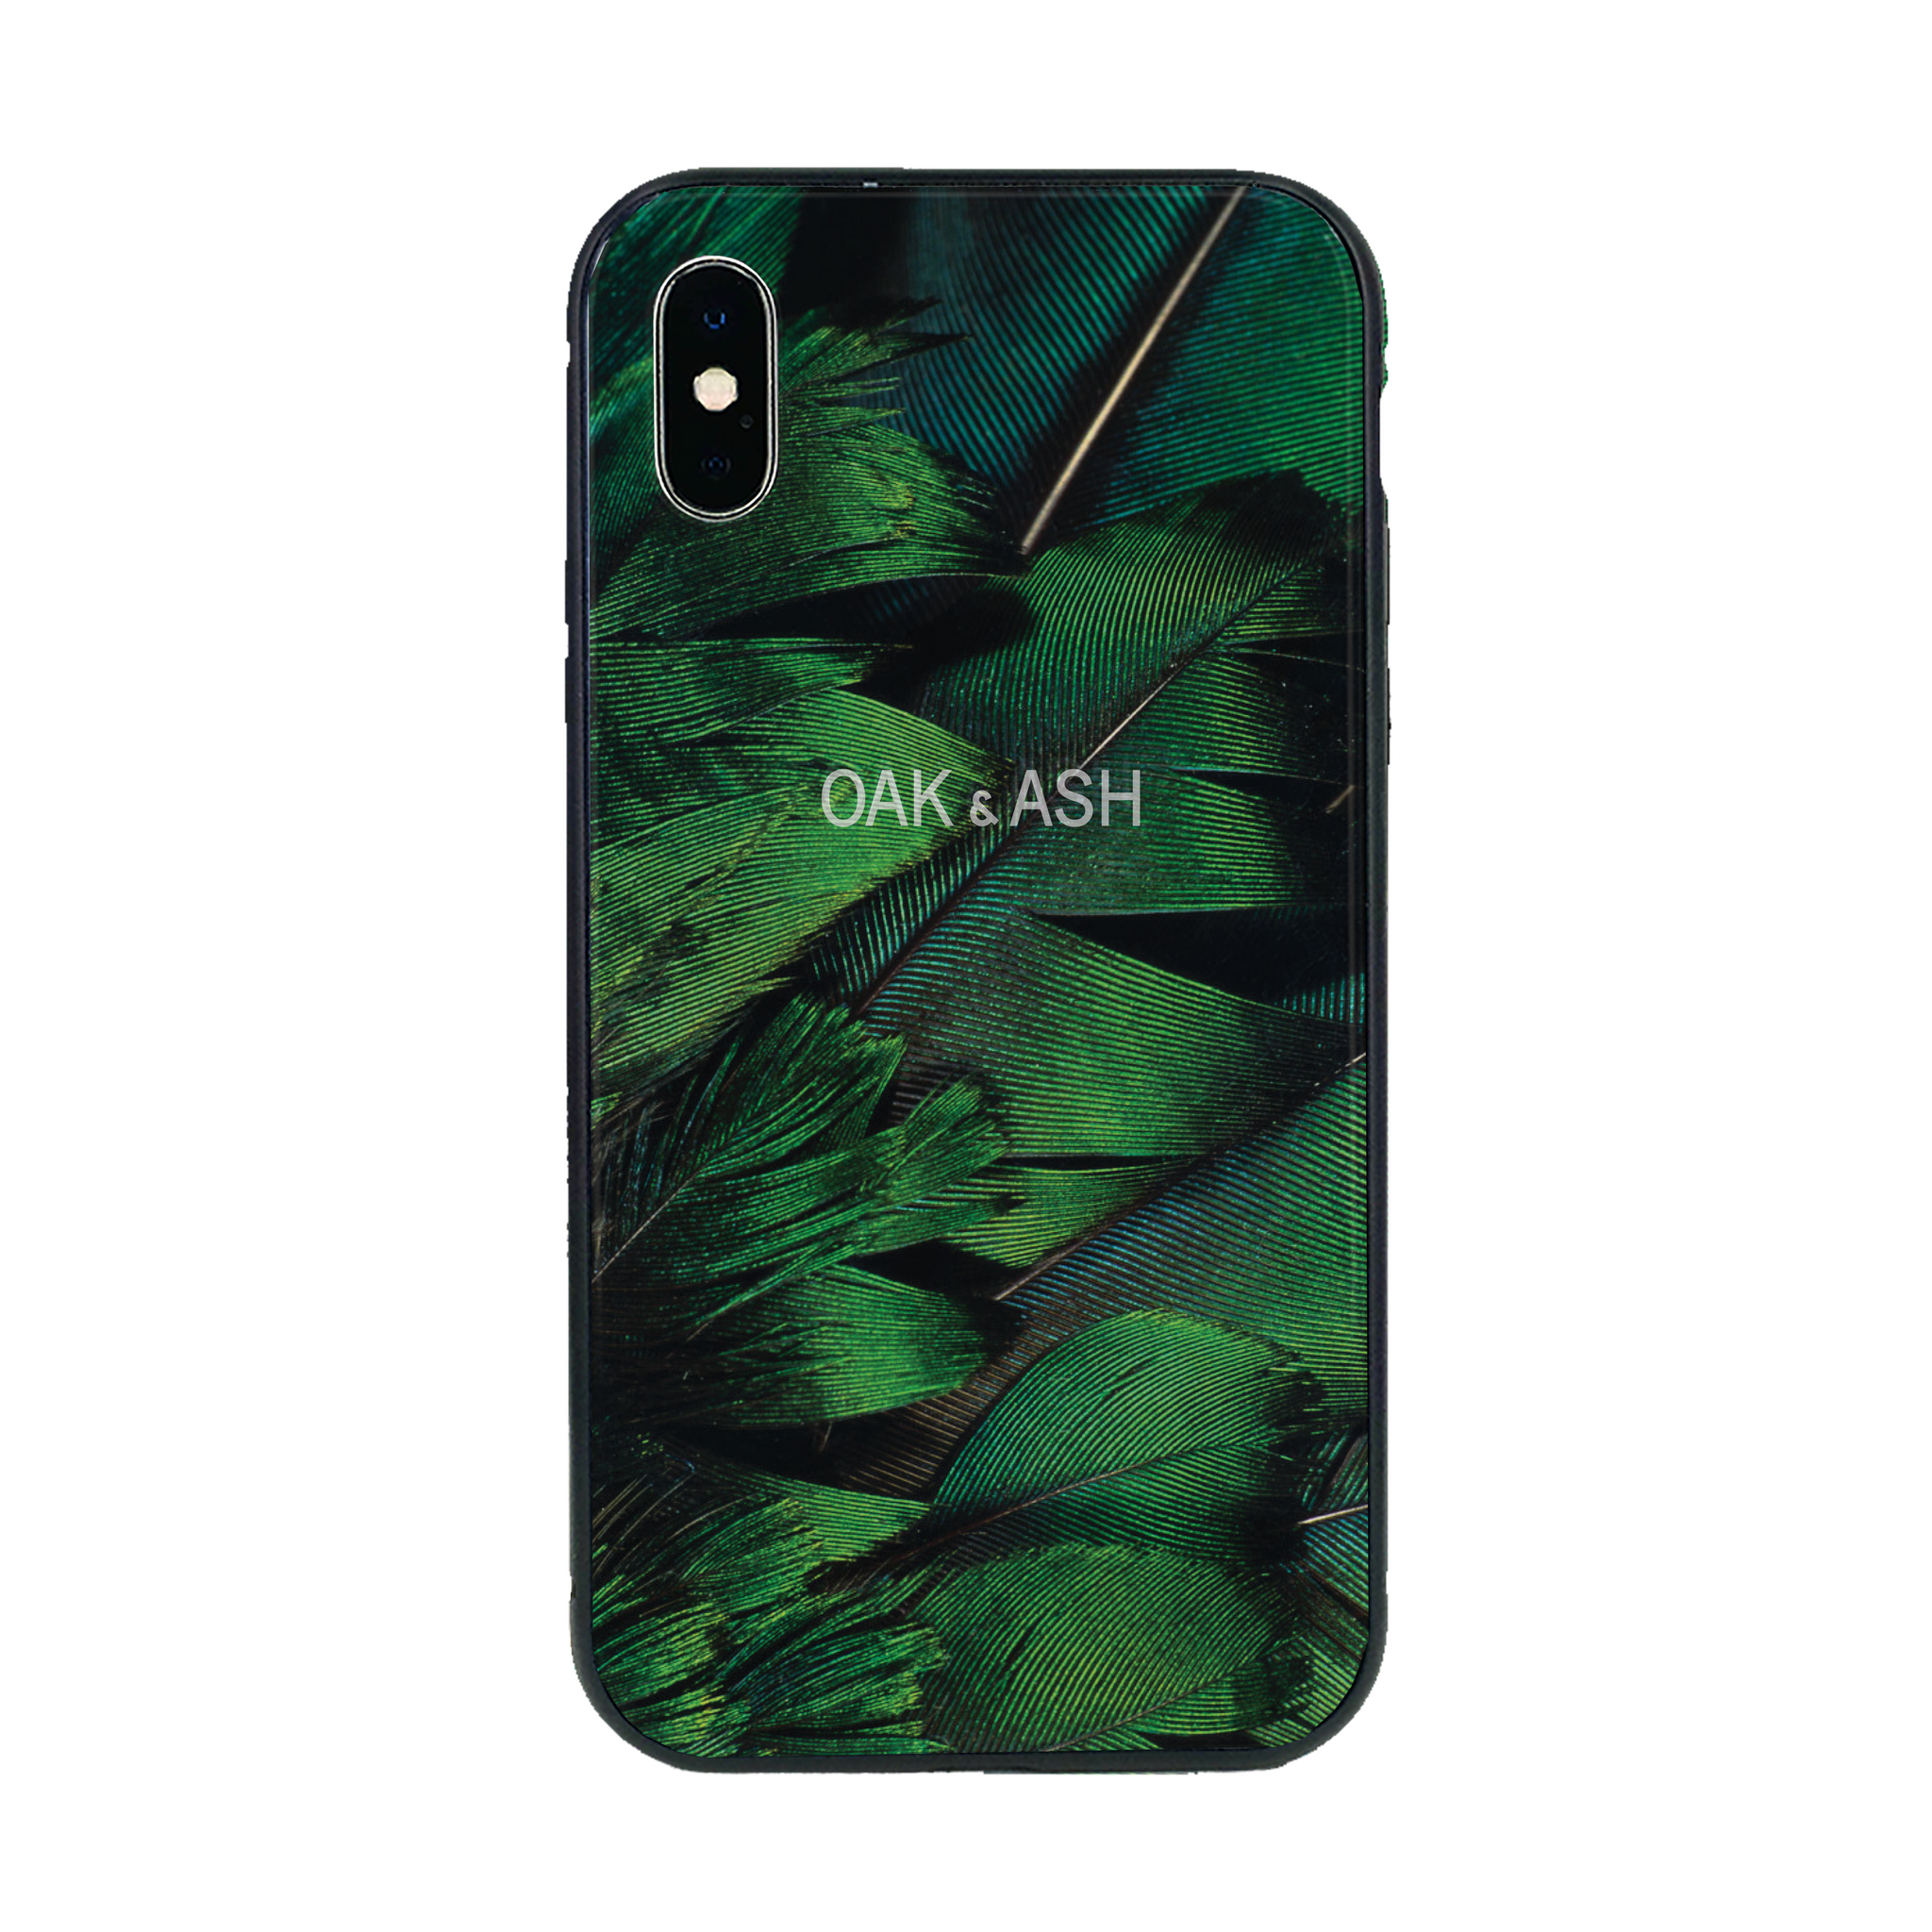 Green Feather | Phone Case for iPhone X/XS - OAK&ASH